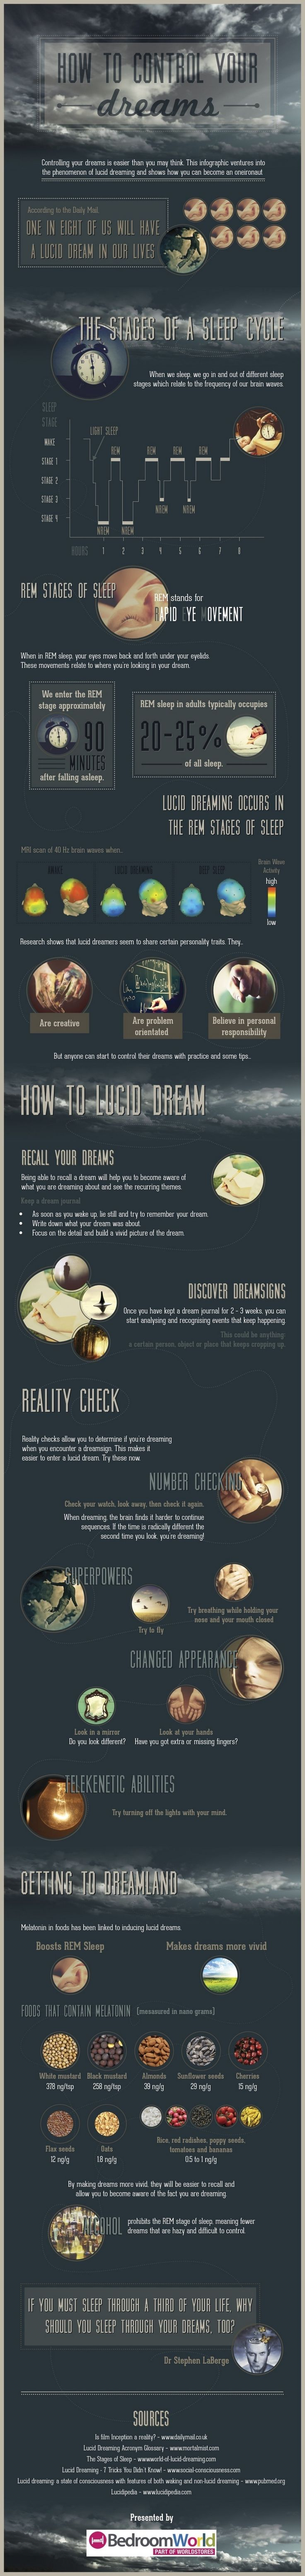 #Lucid: How to #Control Your #Dreams